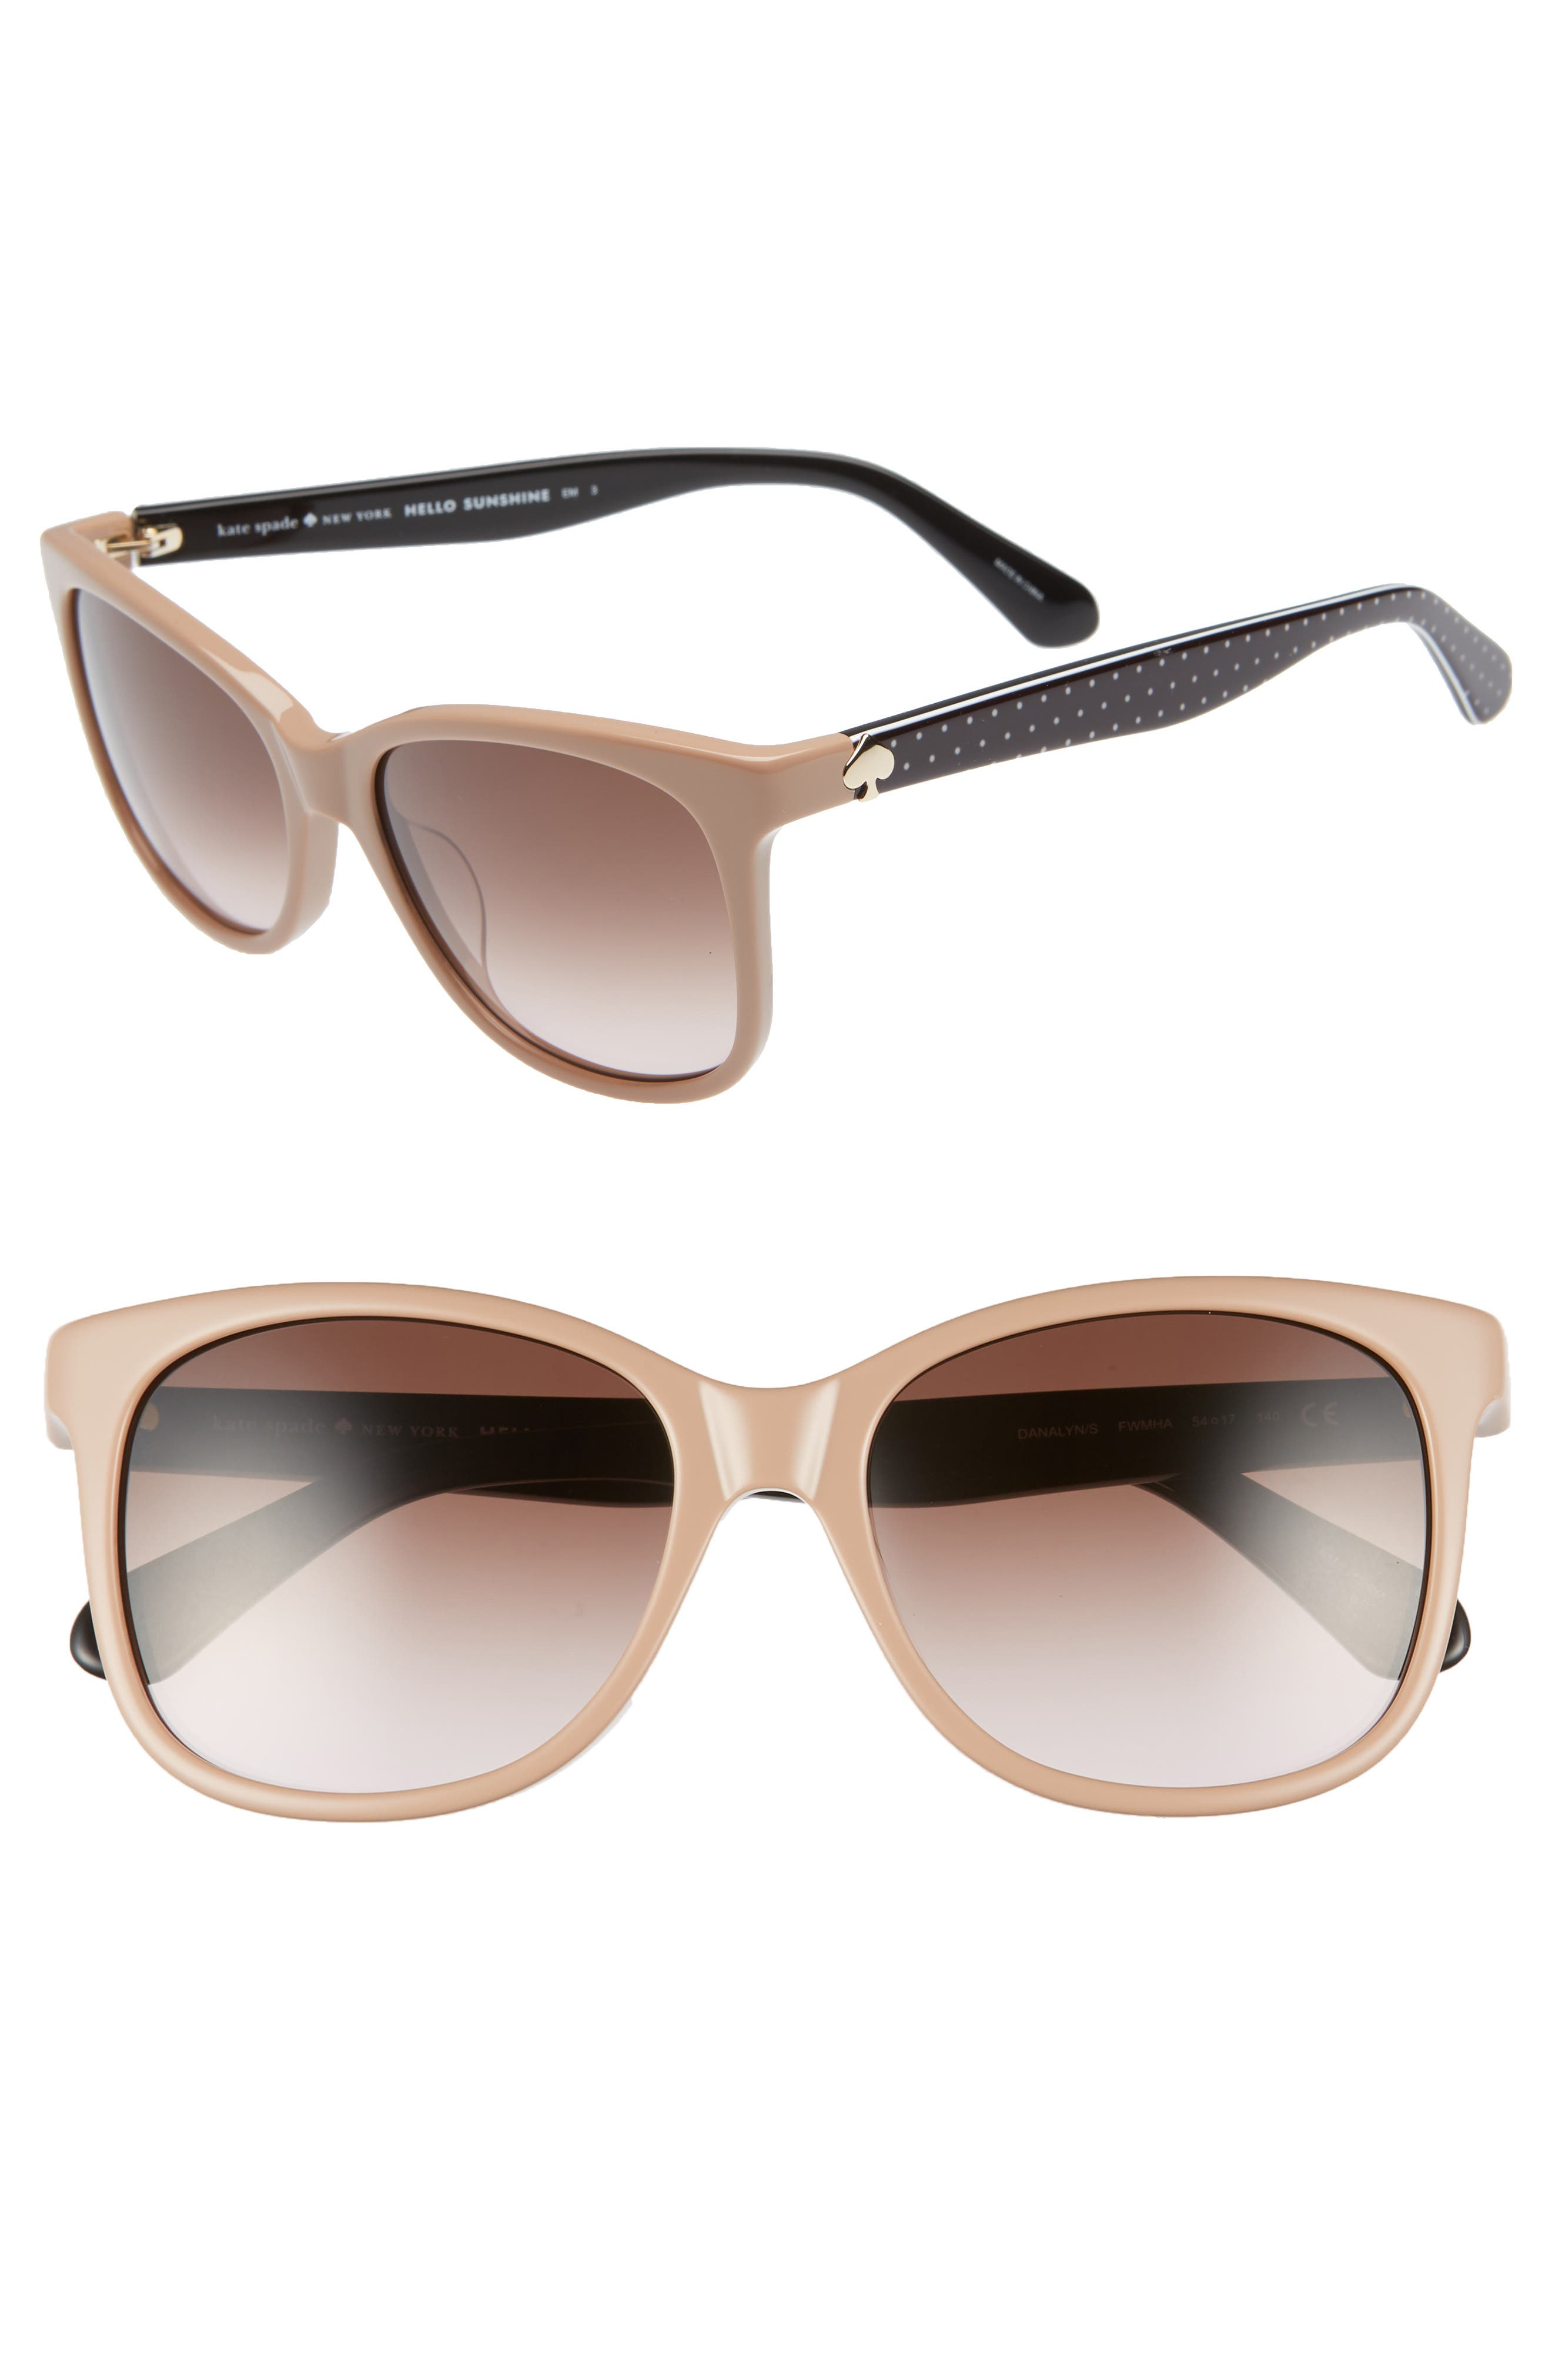 danalyns 54mm sunglasses,                             Main thumbnail 1, color,                             NUDE